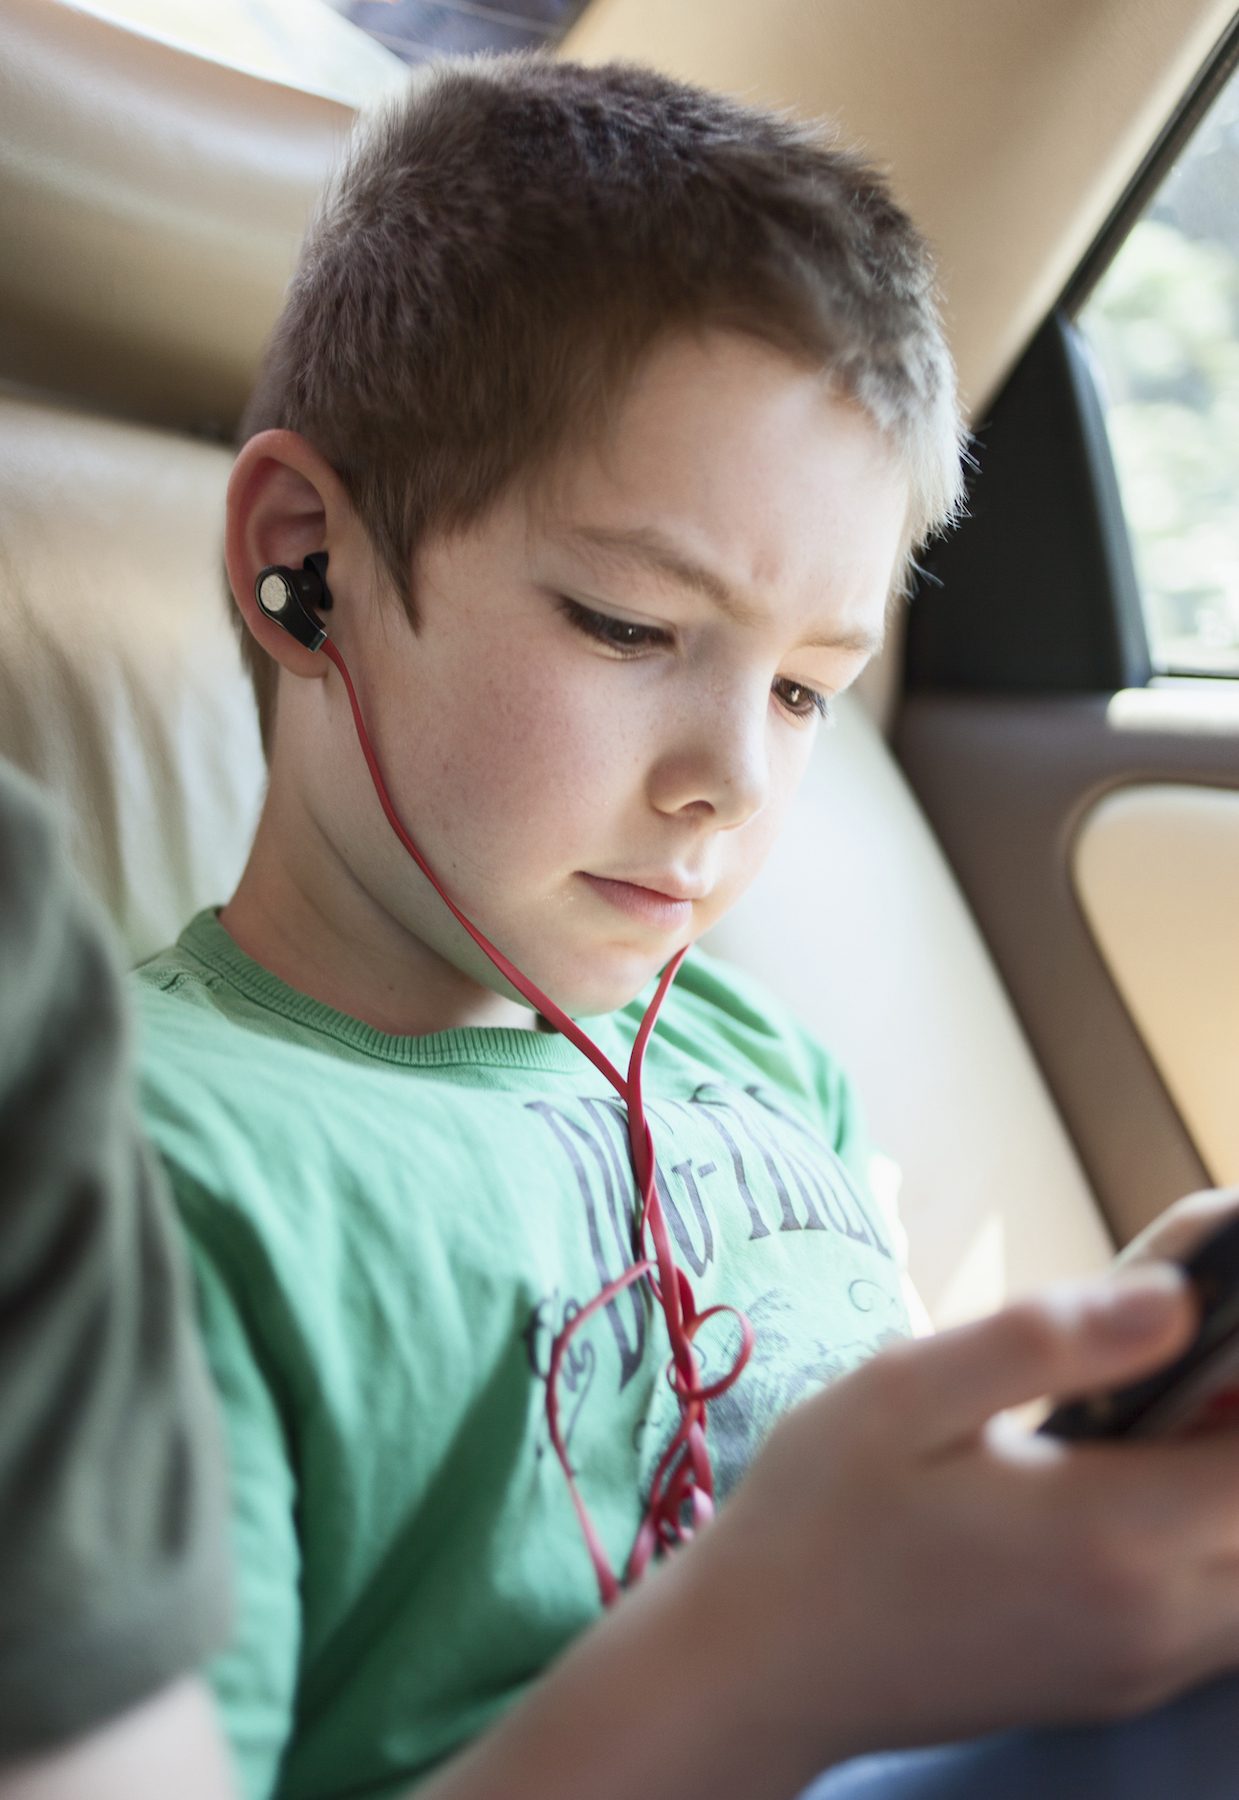 Boy in car with phone